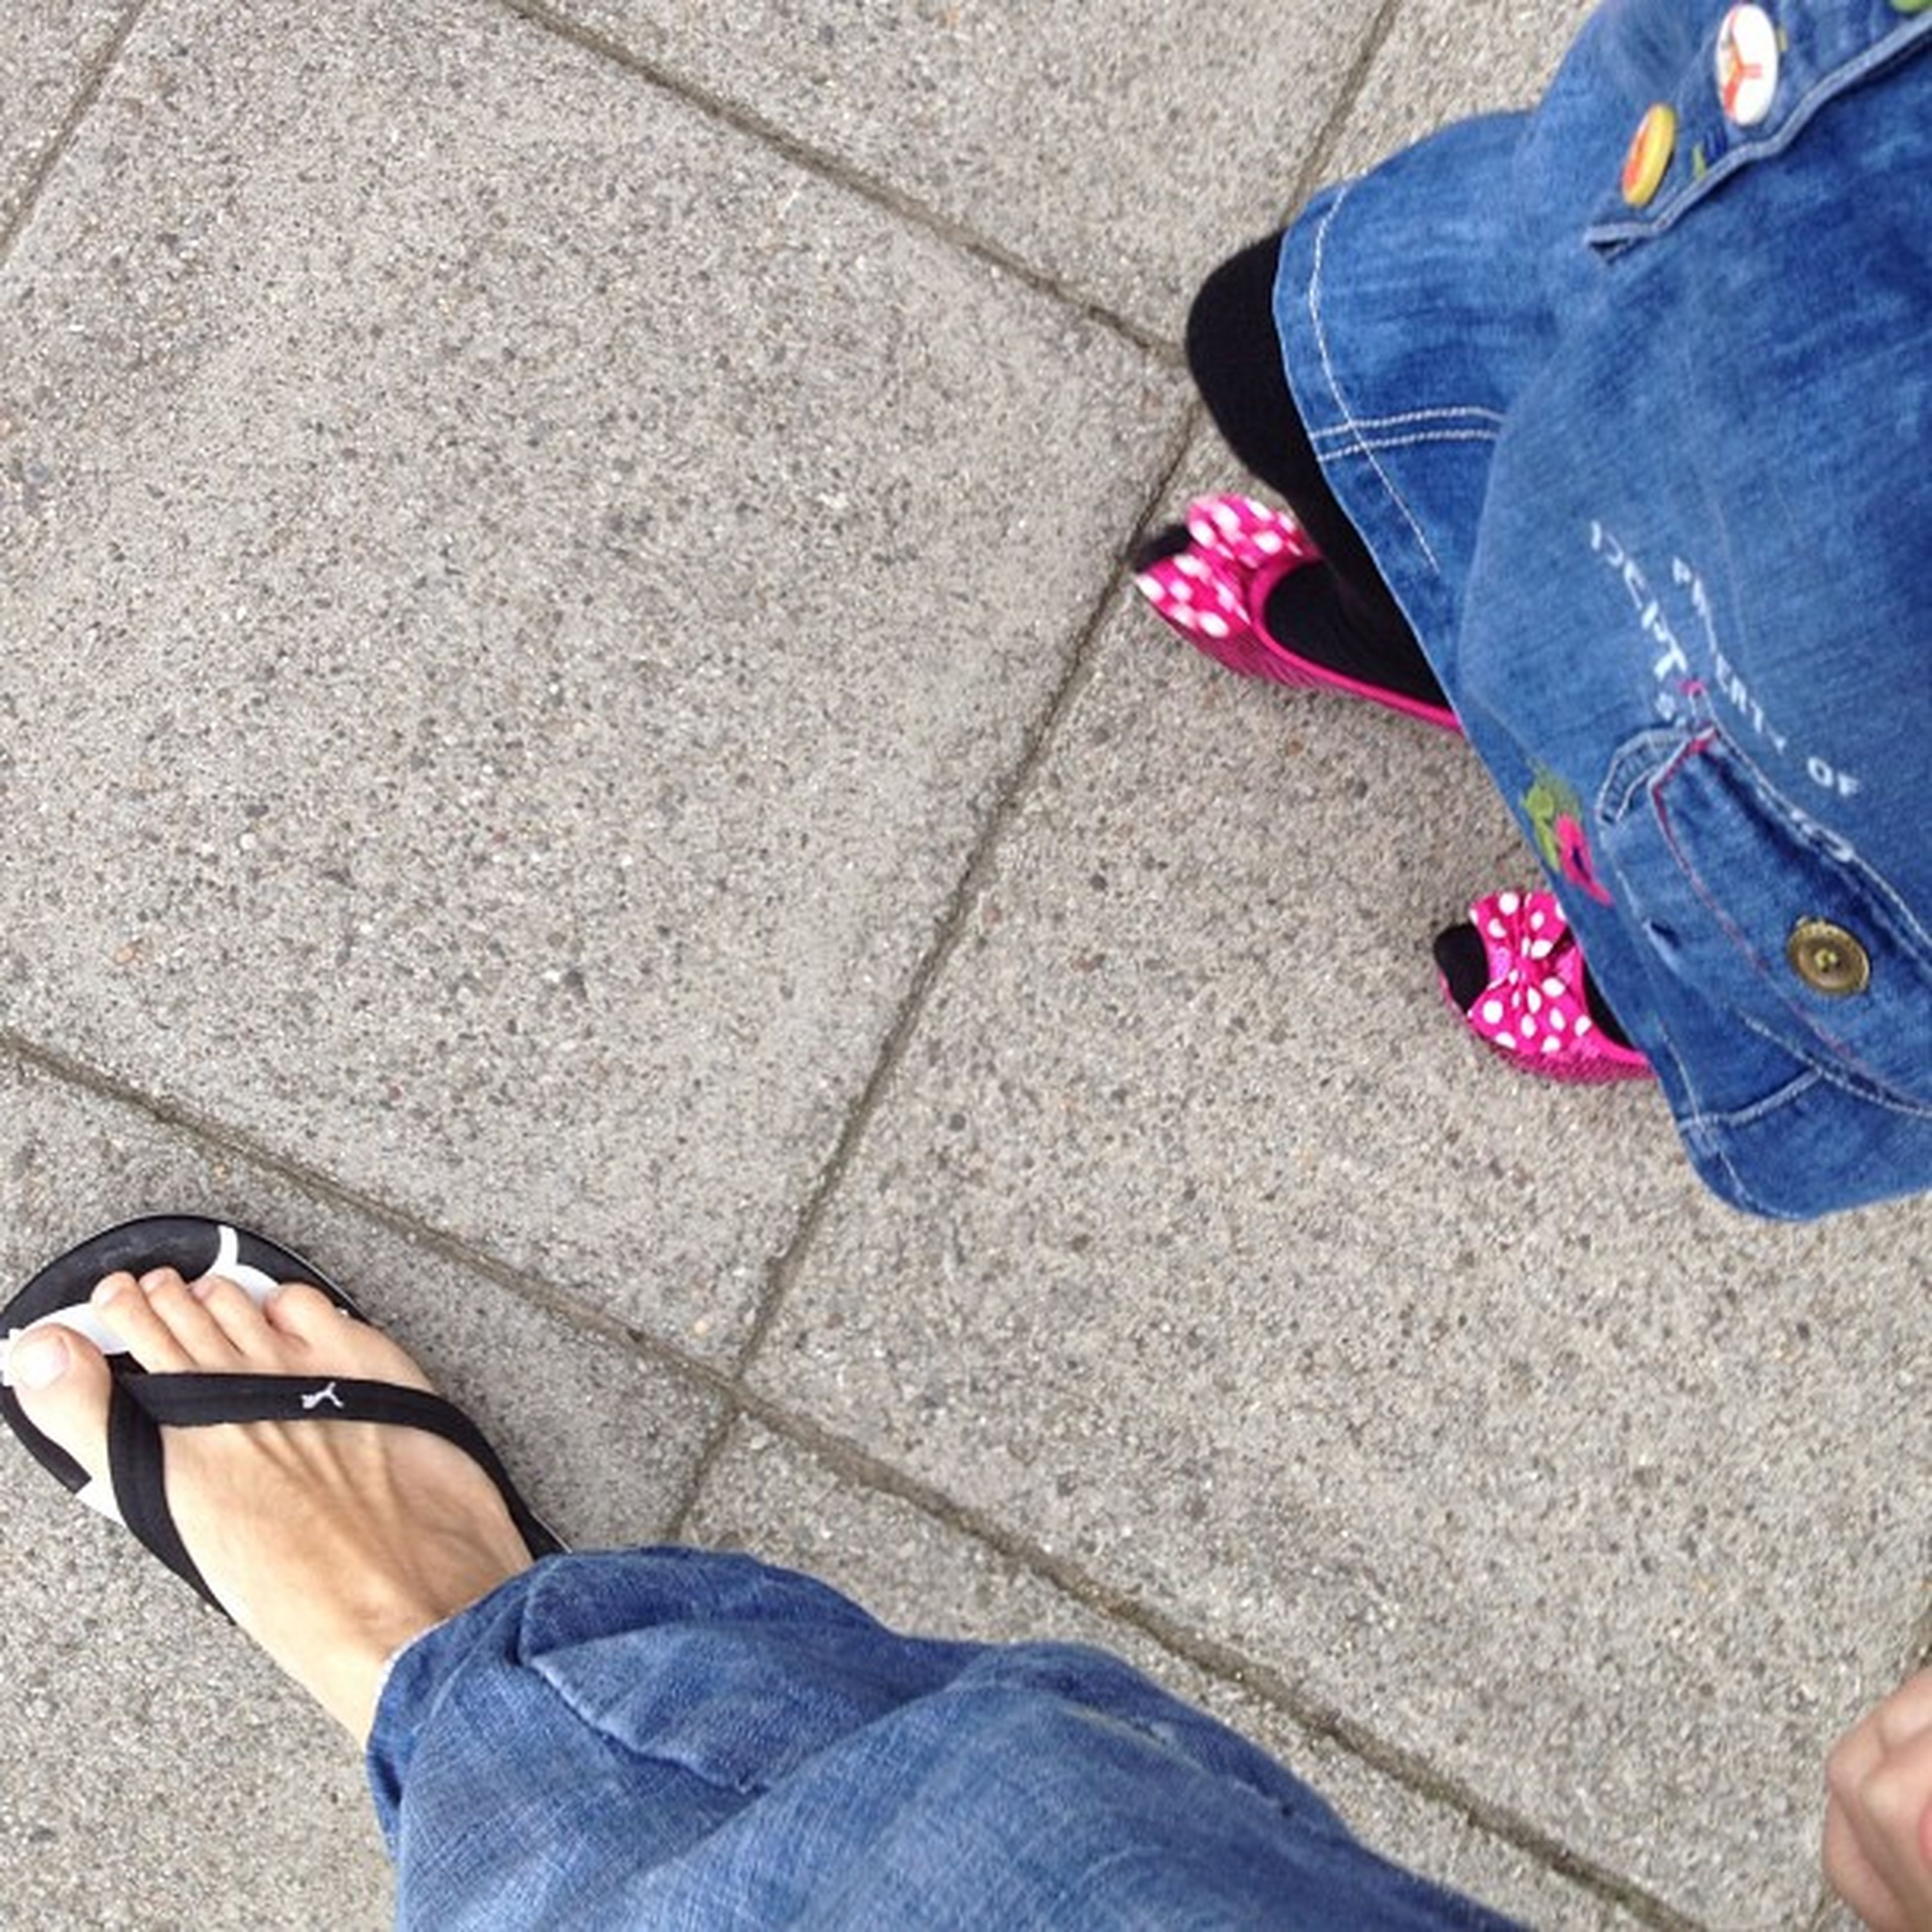 low section, person, lifestyles, men, shoe, leisure activity, standing, high angle view, casual clothing, street, togetherness, personal perspective, jeans, human foot, footwear